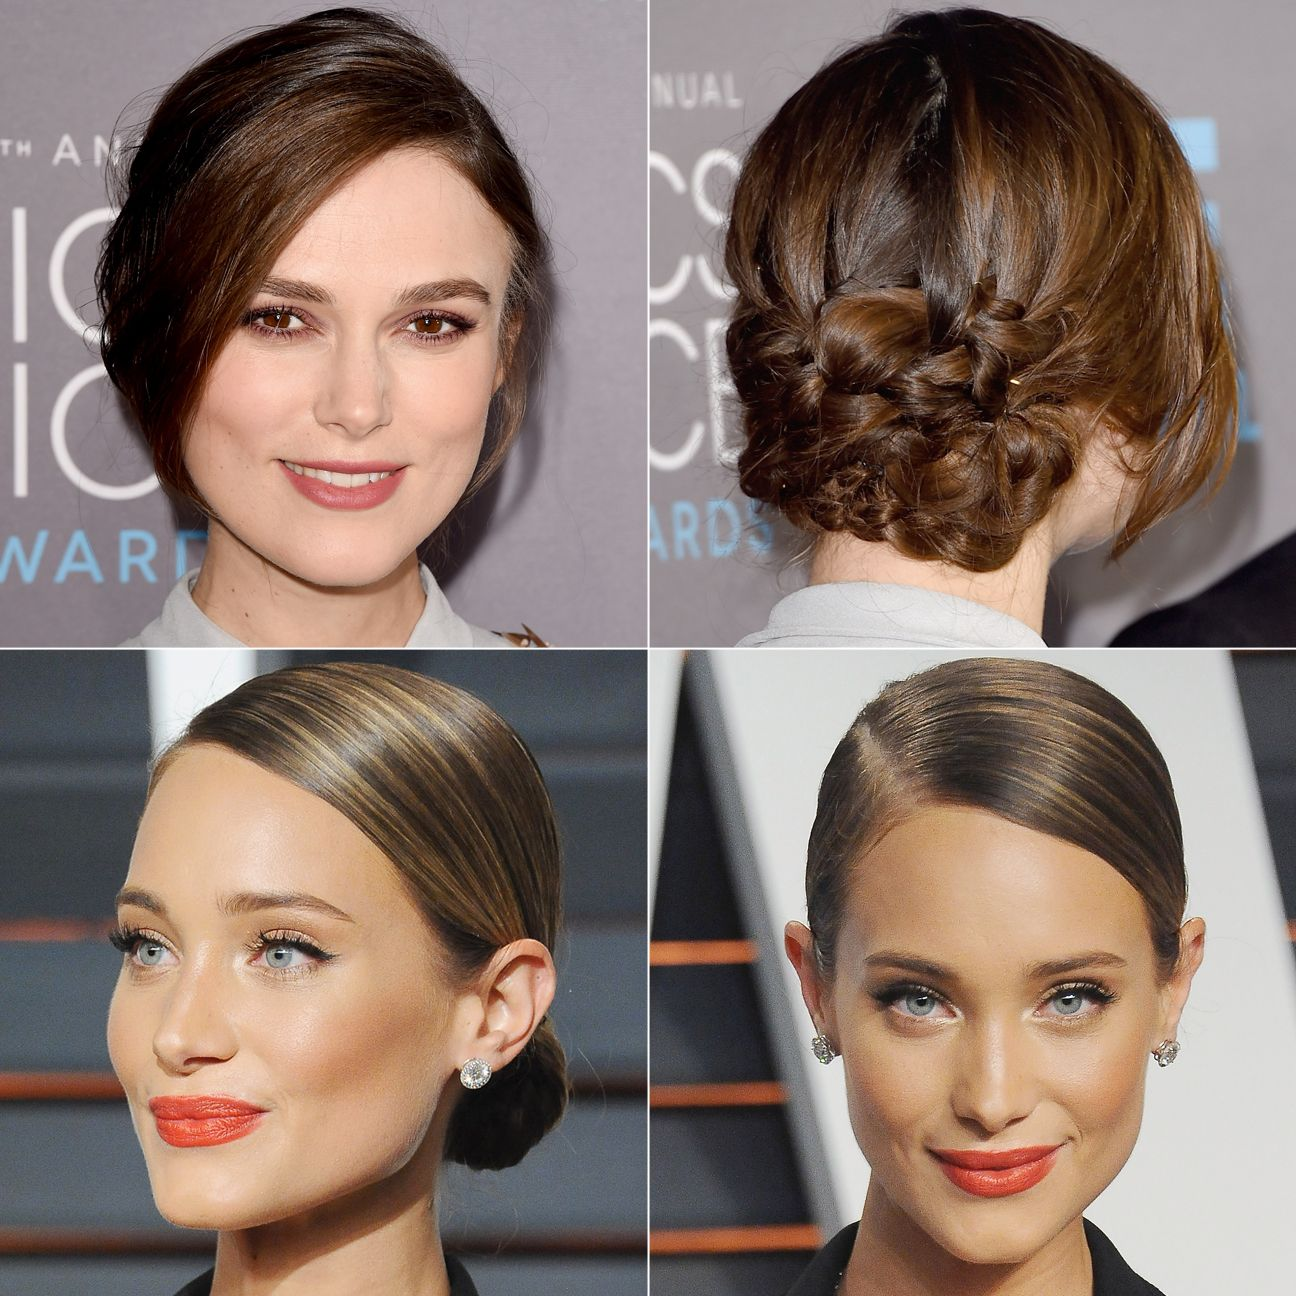 Find Your Wedding Updo Inspo With These Red Carpet Hairstyles